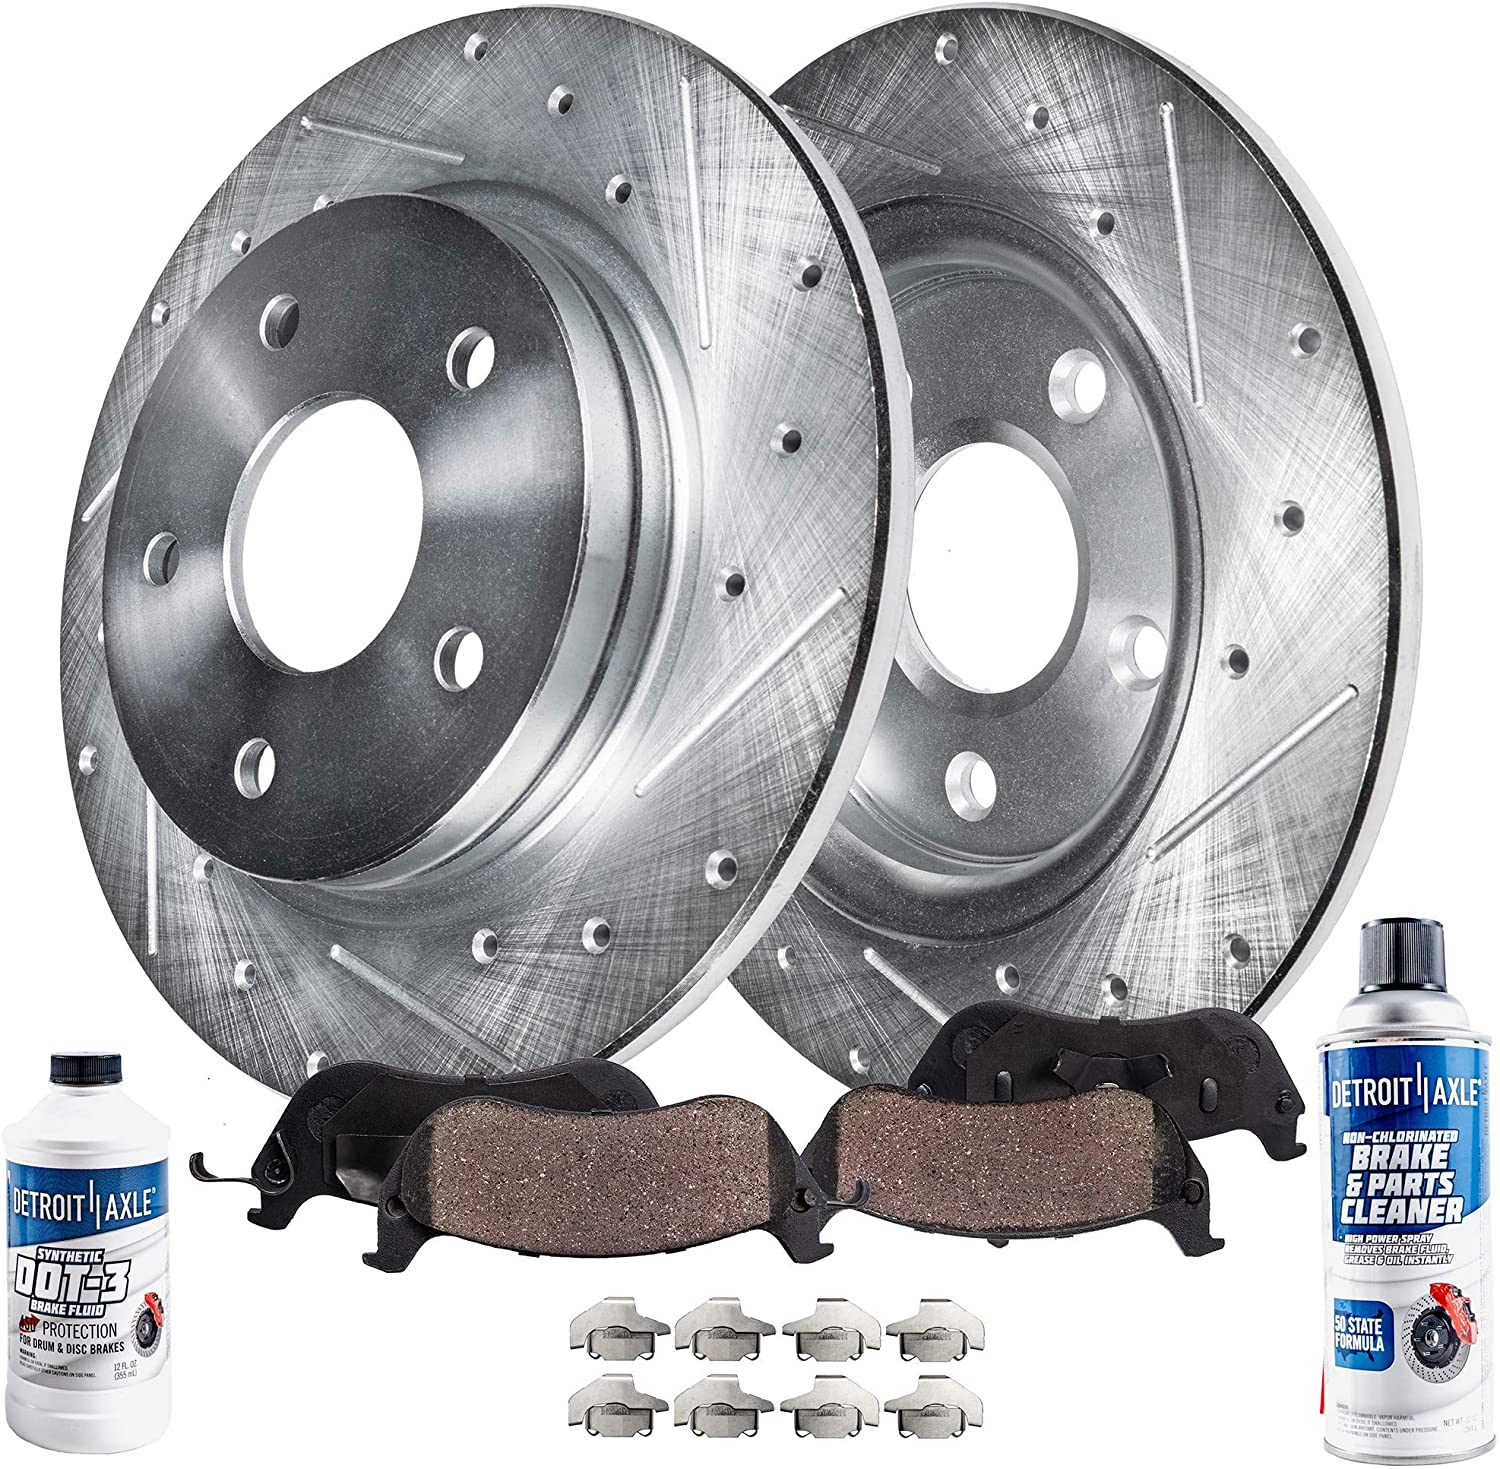 Detroit Axle - 286mm Rear Drilled & Slotted Brake Rotors Ceramic Pads w/Hardware + Brake Cleaner Fluid Replacement for 06-08 Audi A3 - [07-10 VW EOS] - 07-13 GTI - [05-10 Jetta] - 06-07 Passat